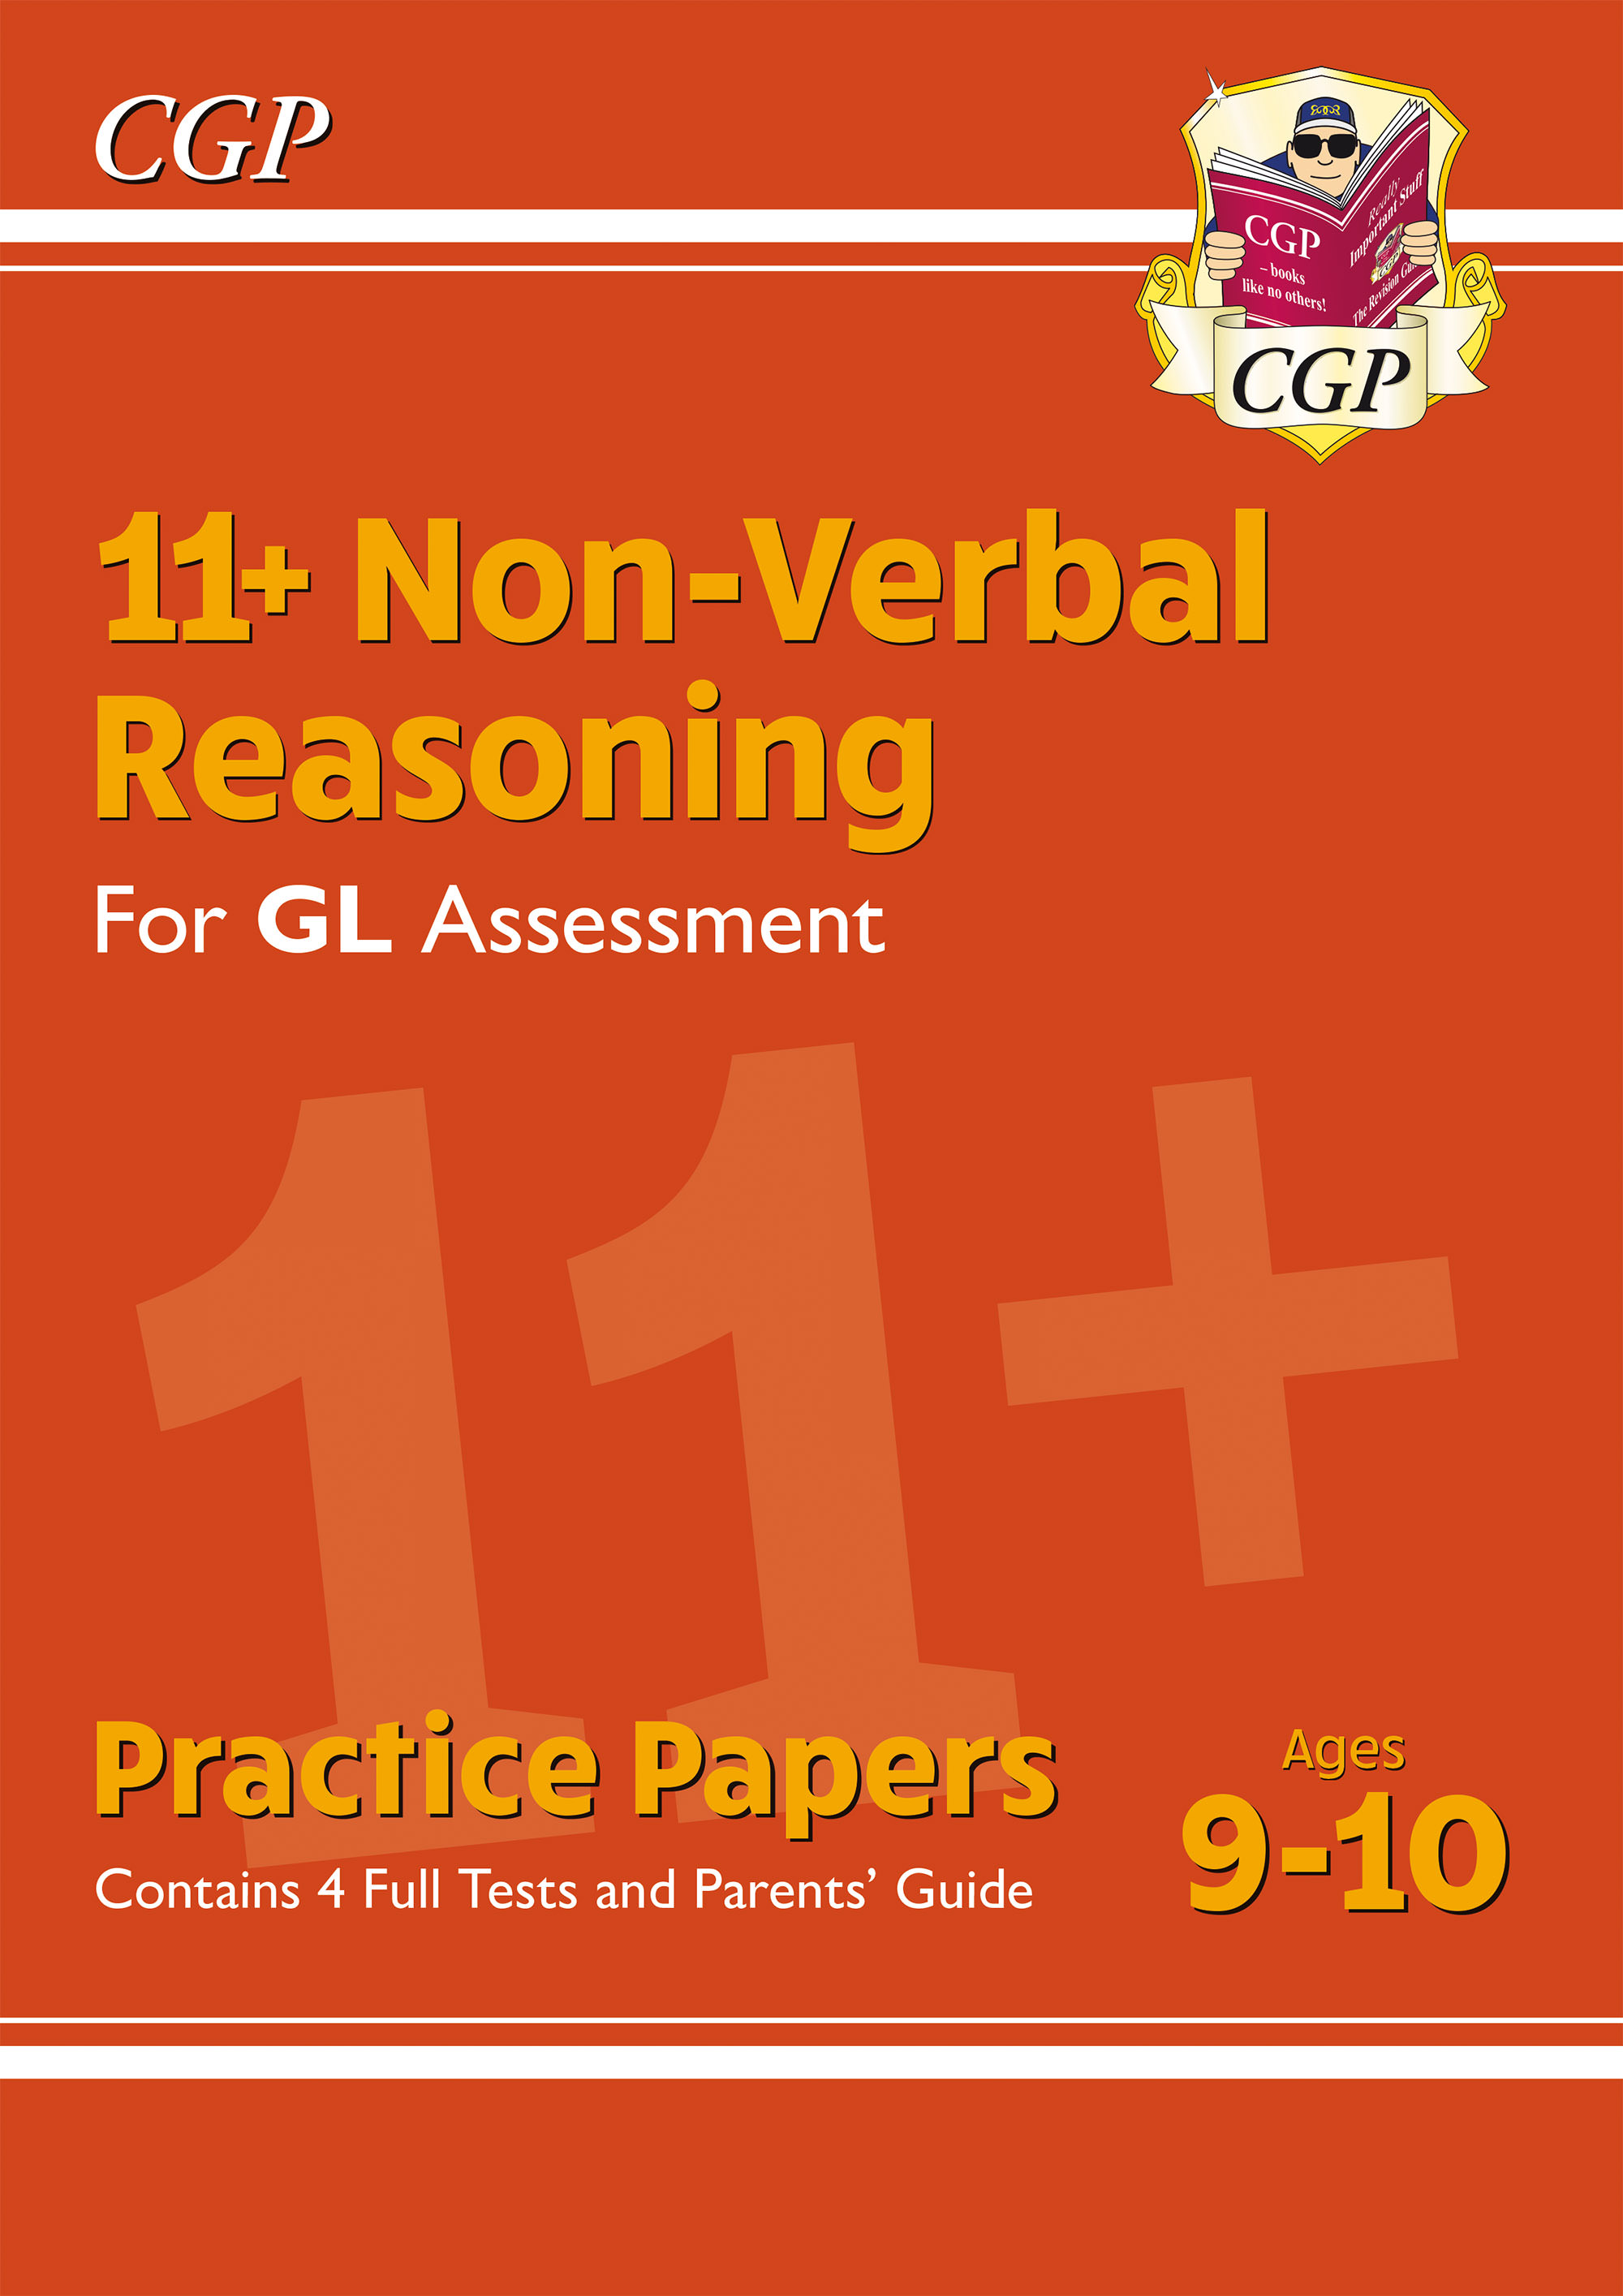 NH5PE1DK - New 11+ GL Non-Verbal Reasoning Practice Papers - Ages 9-10 (with Parents' Guide)